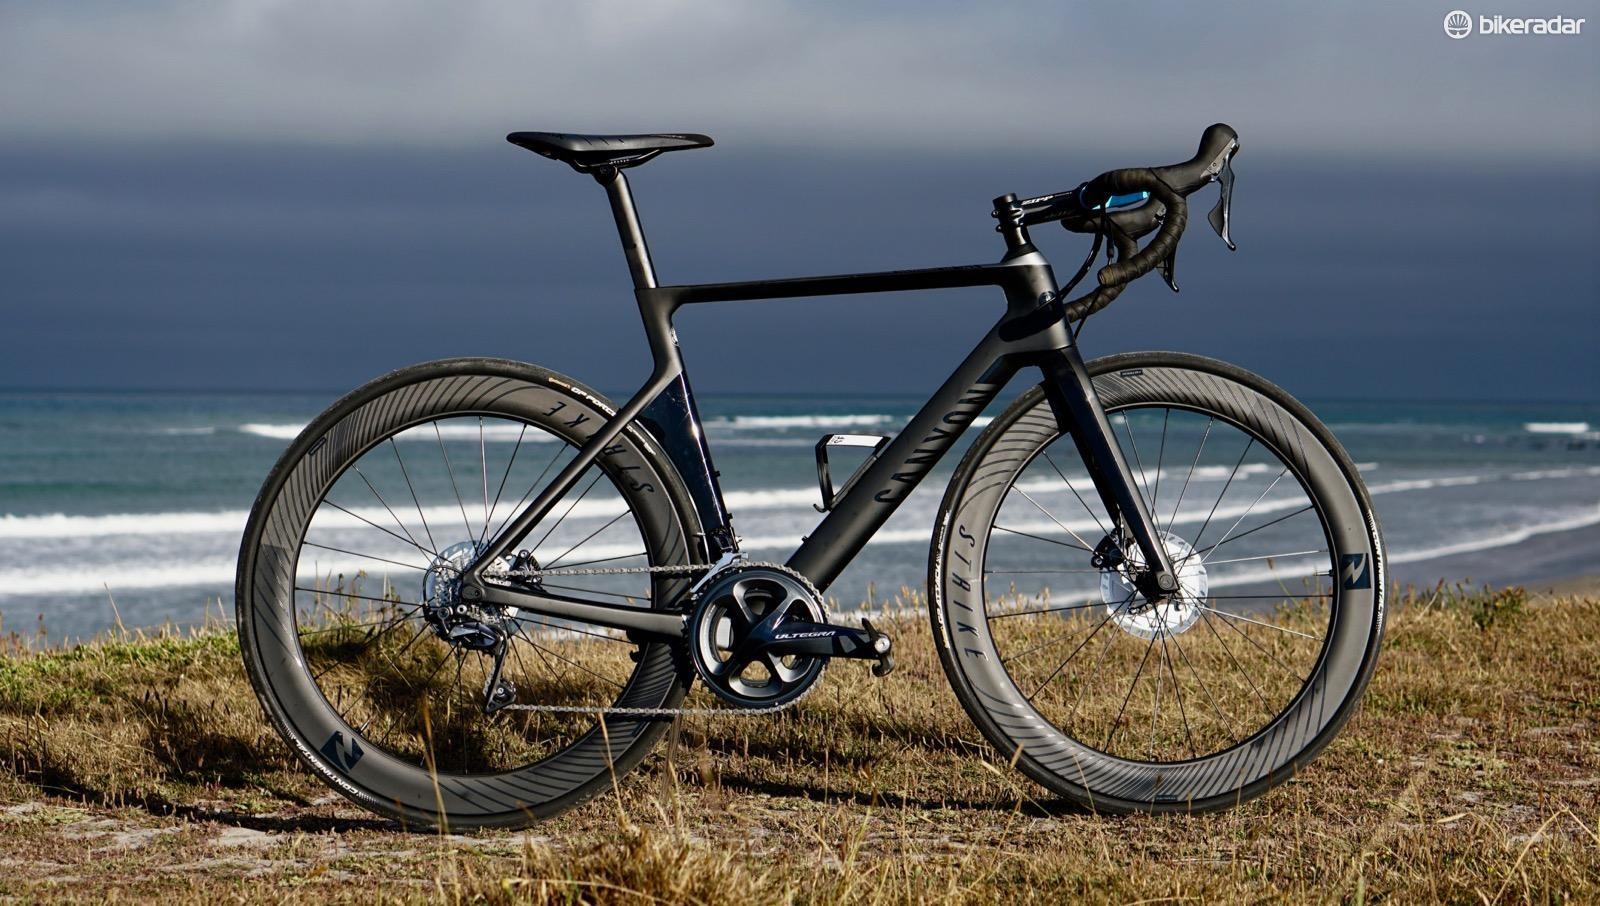 Canyon's Aeroad CF SLX Disc 8.0 is a fast disc bike with a normal bar and stem — and a great price